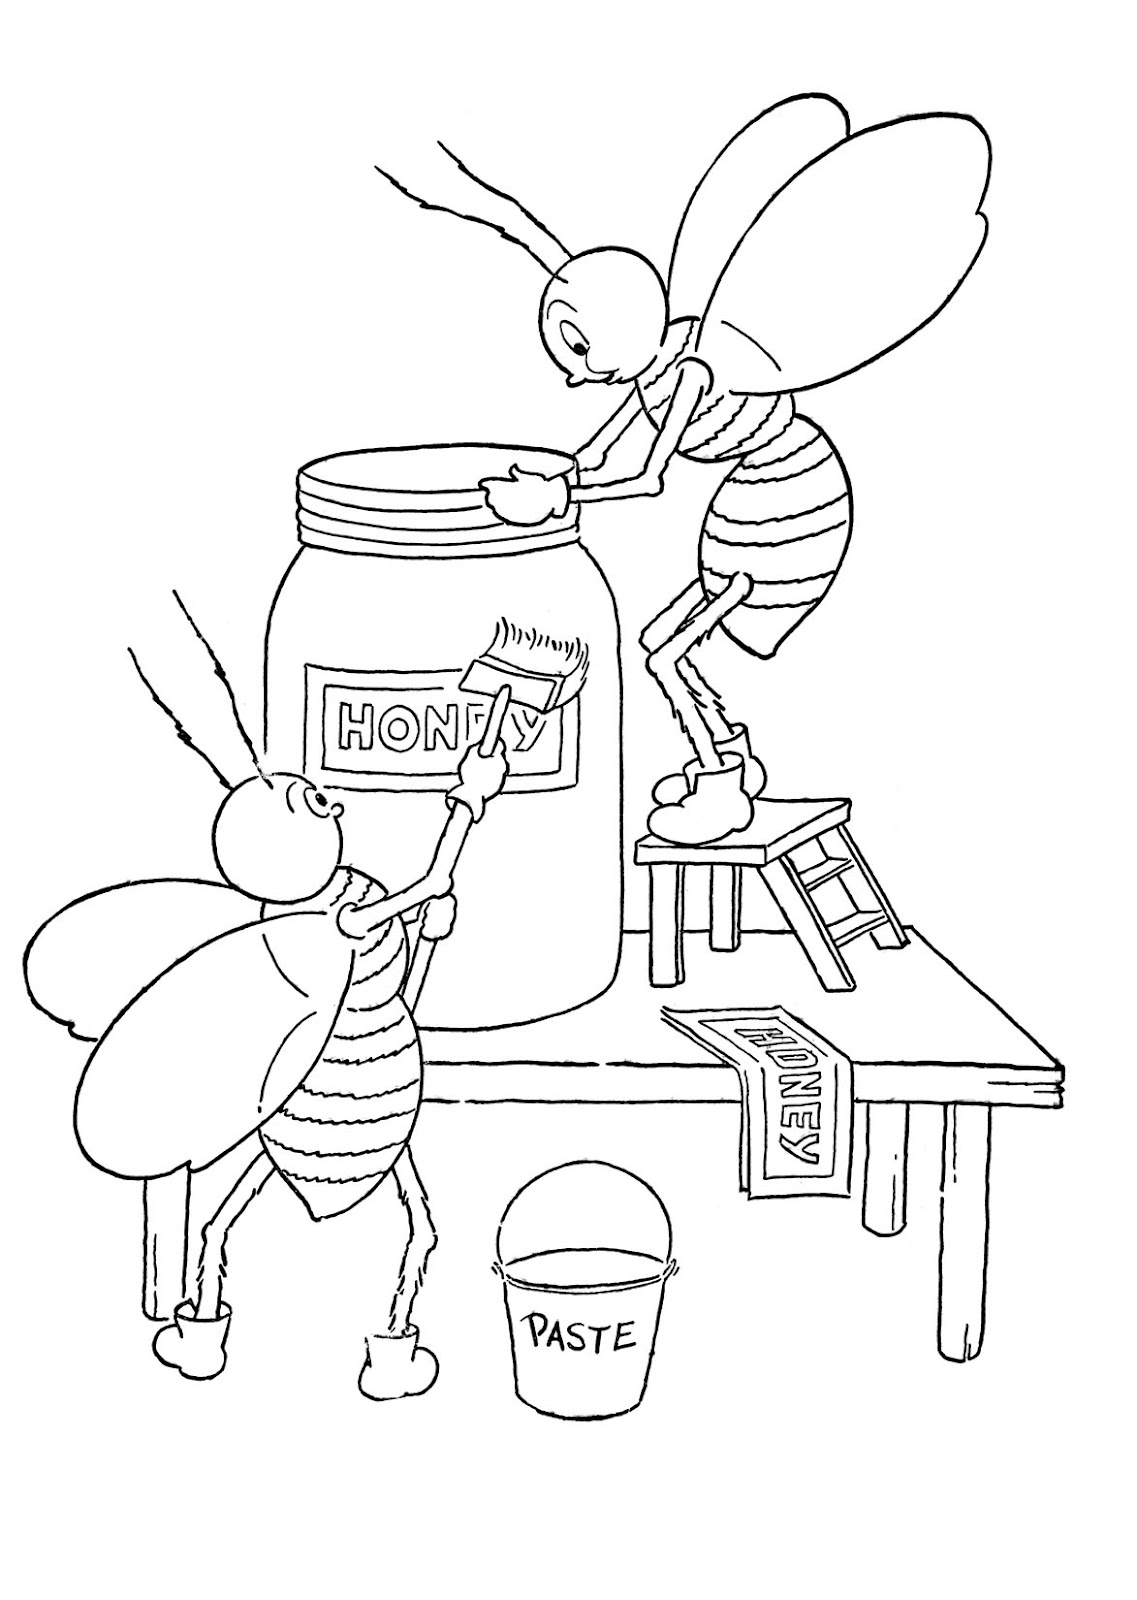 coloring book for kids pdf kids printable honey bees coloring page the graphics fairy for kids book pdf coloring